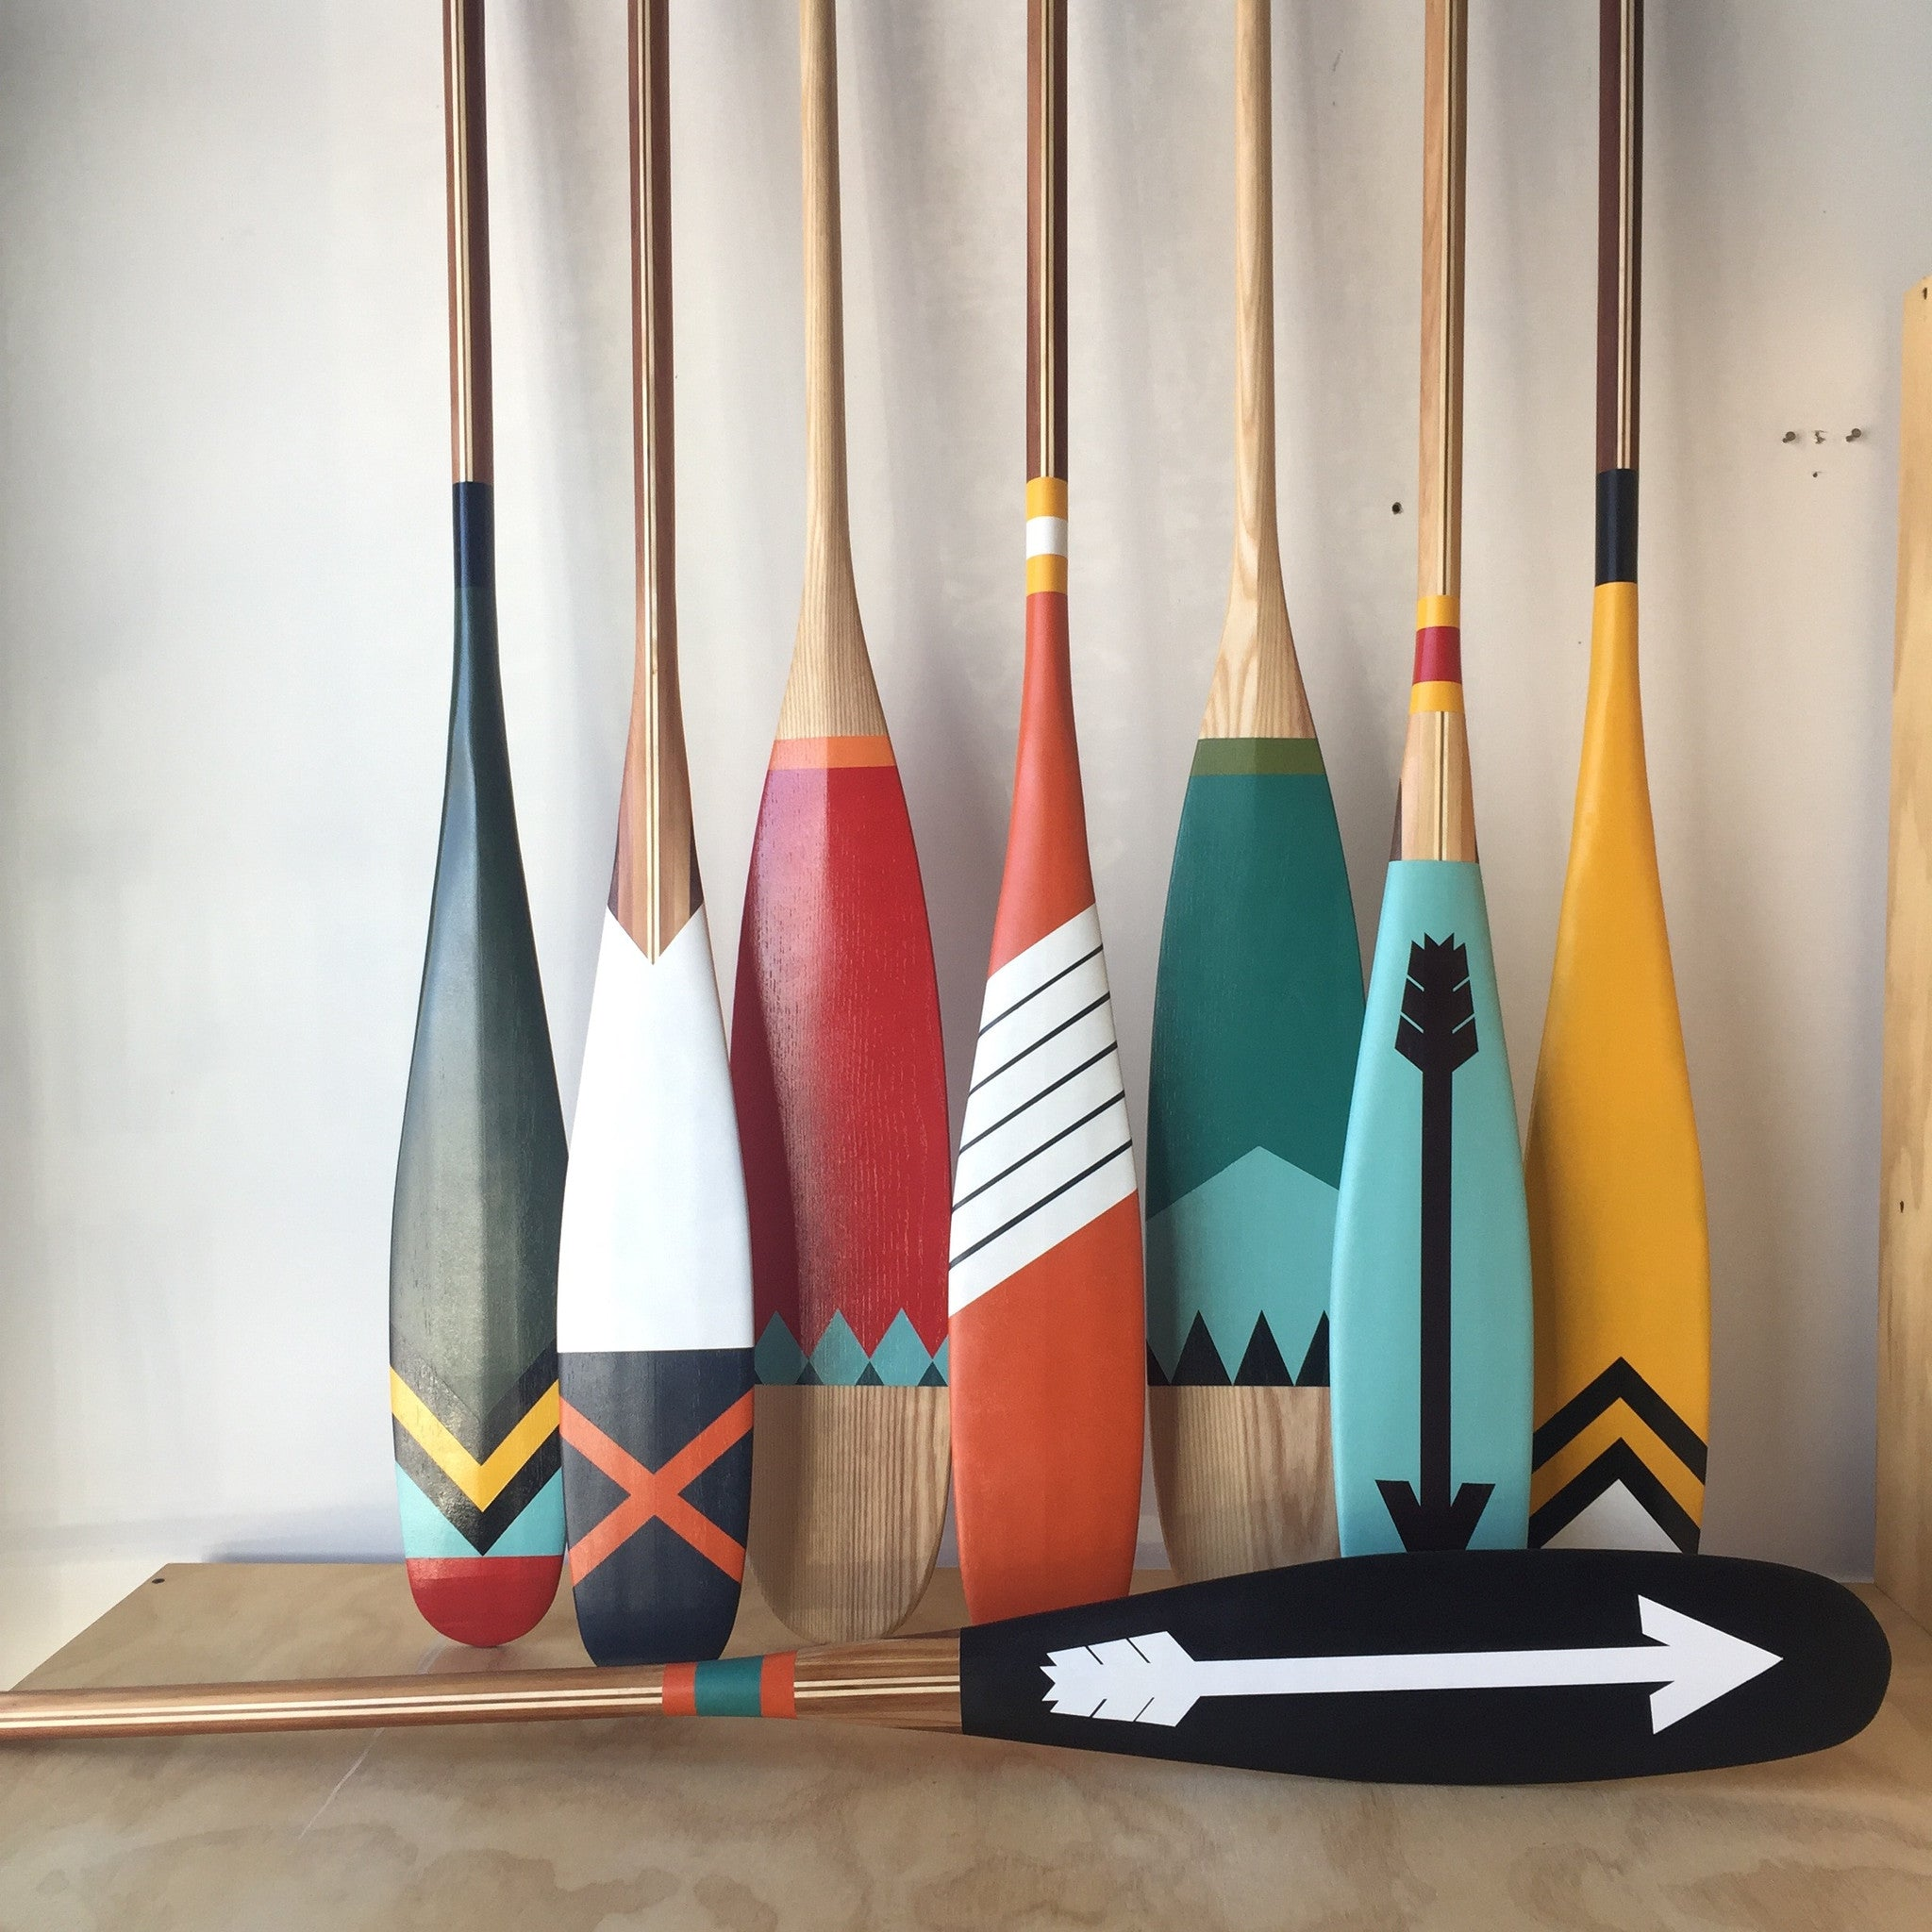 West Handmade Artisan Paddle by Sanborn Canoe